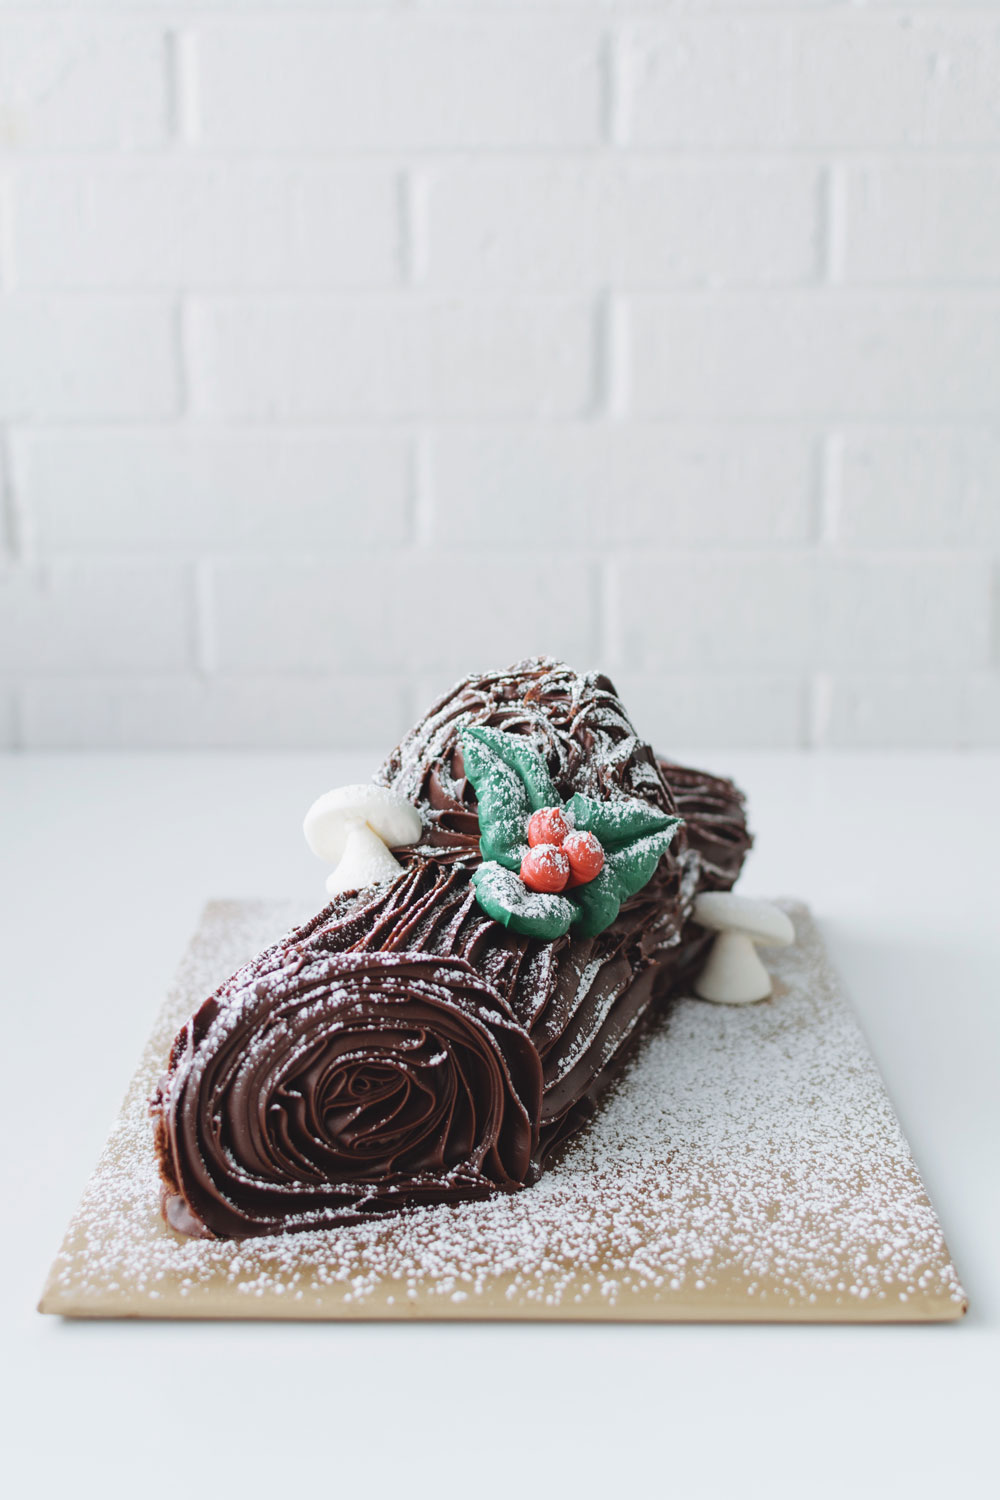 YULE LOG - chocolate cake rolled with chocolate mousse, iced with chocolate fudge icing, and dusted with powdered sugar$46